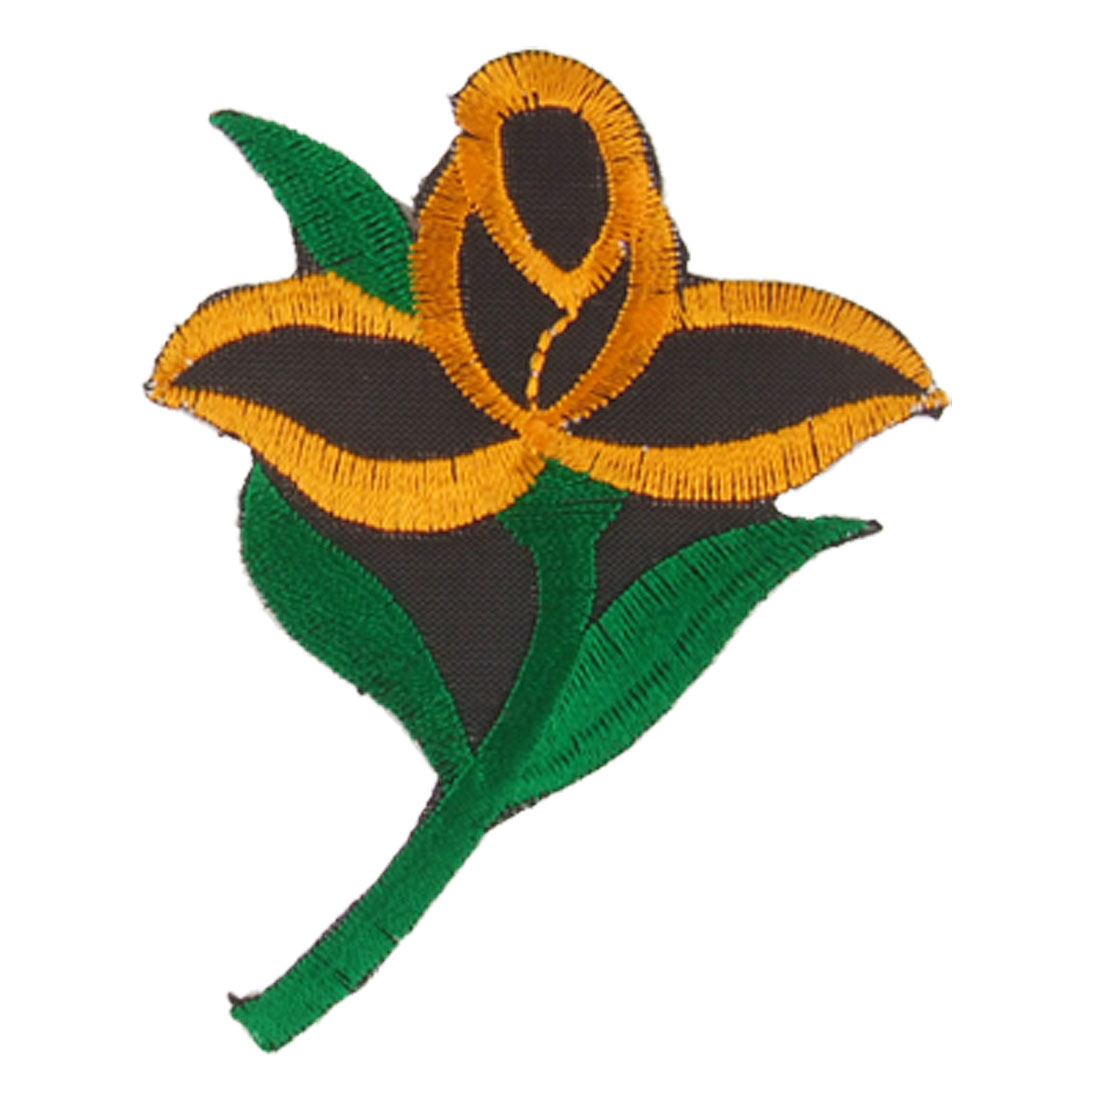 Green Leaf Orange Flower Iron On Patch Embroidered Applique